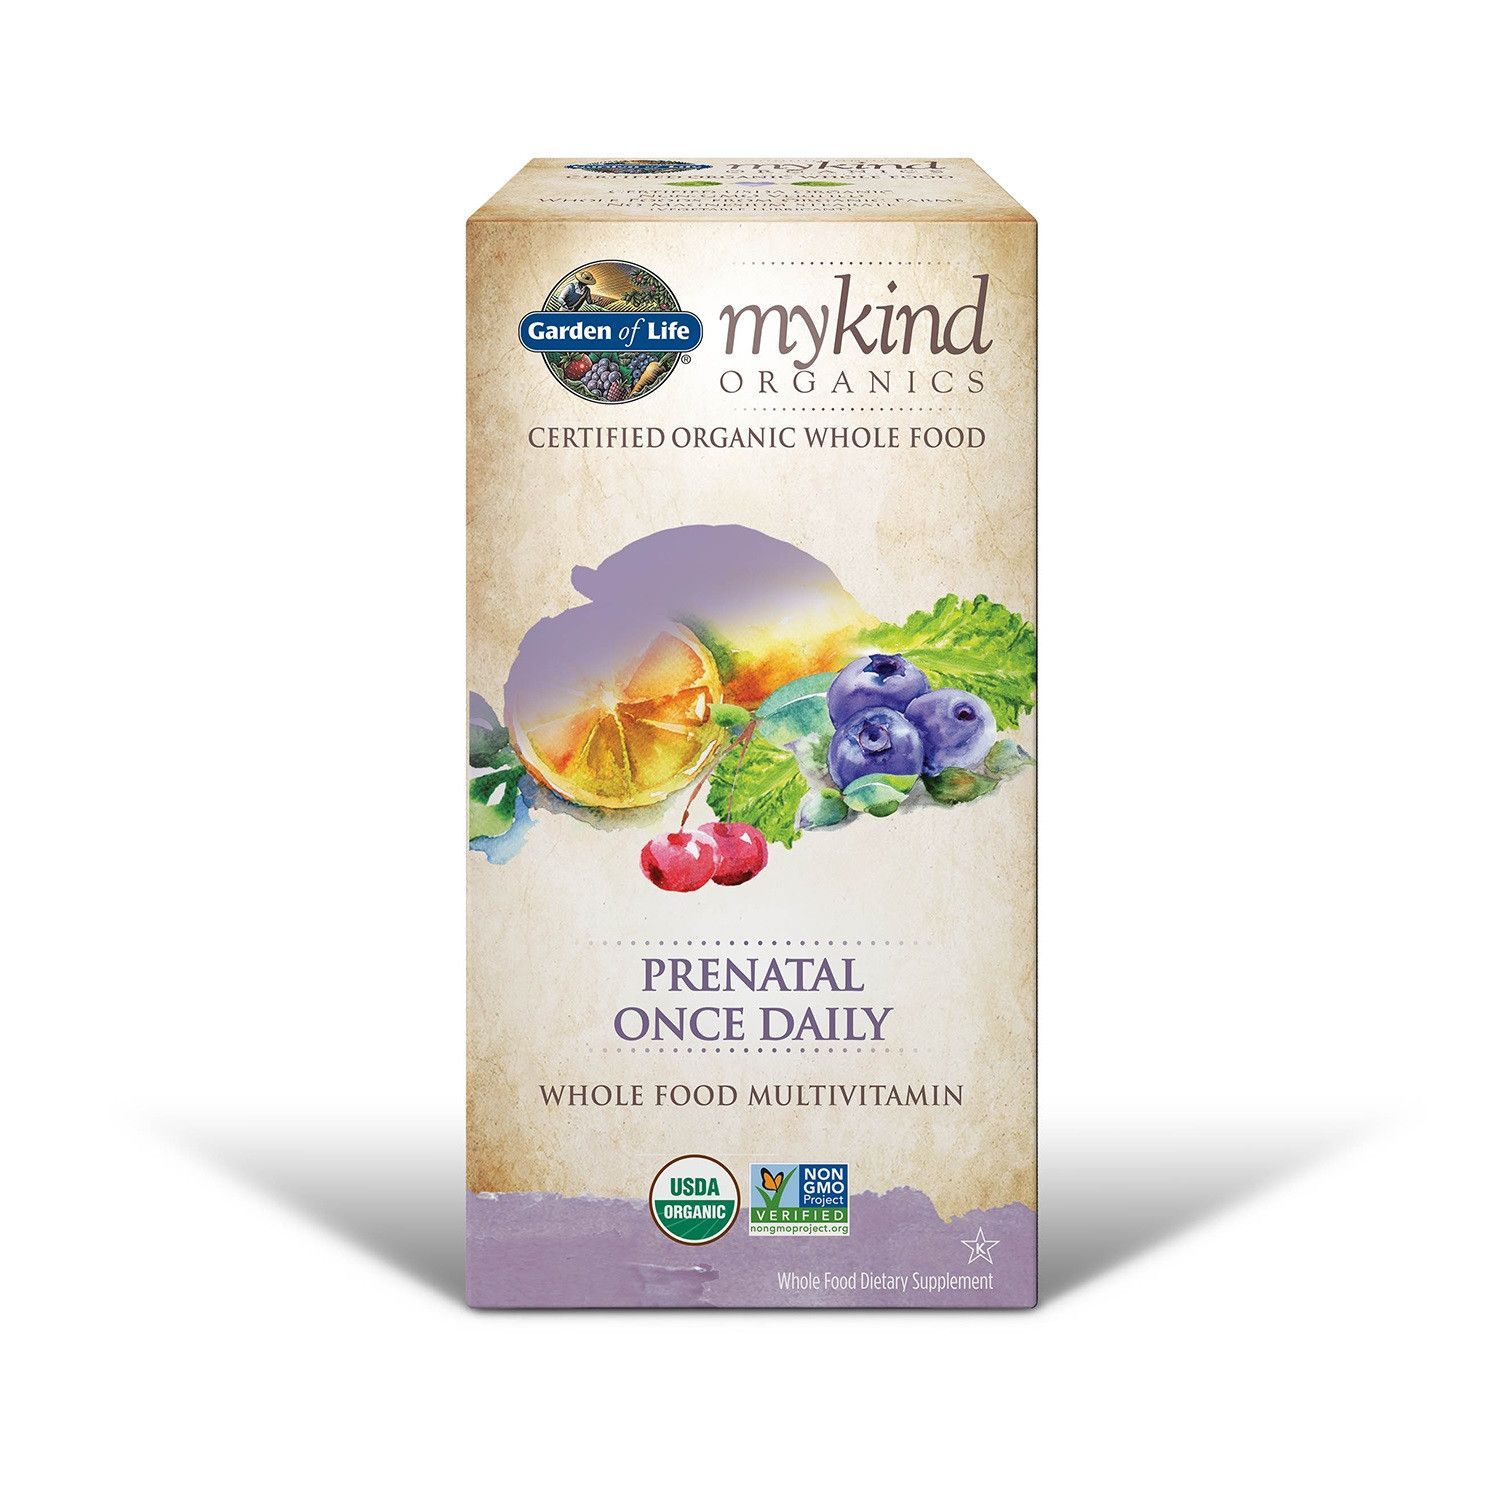 Garden Of Life mykind Organics Prenatal Once Daily